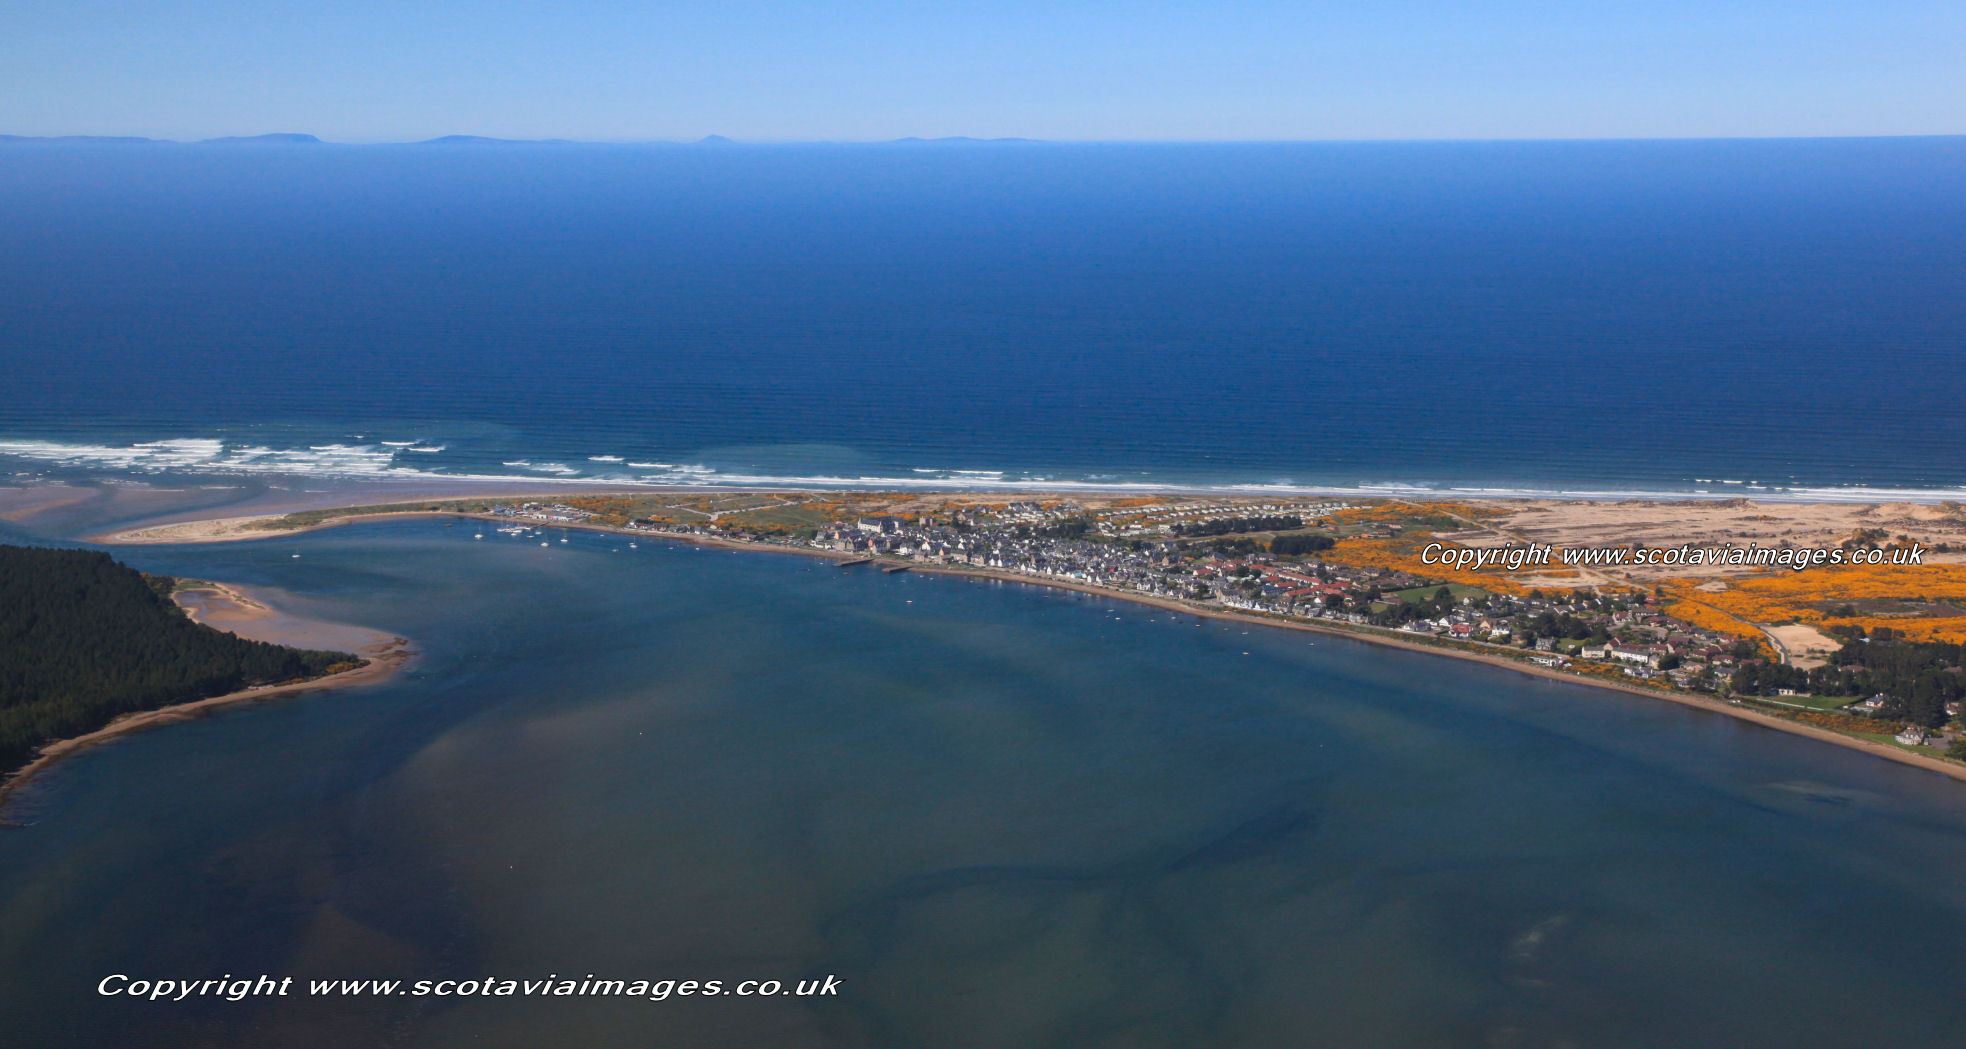 Scottish scenery ,Aerial photography Scotland,Findhorn, wide view